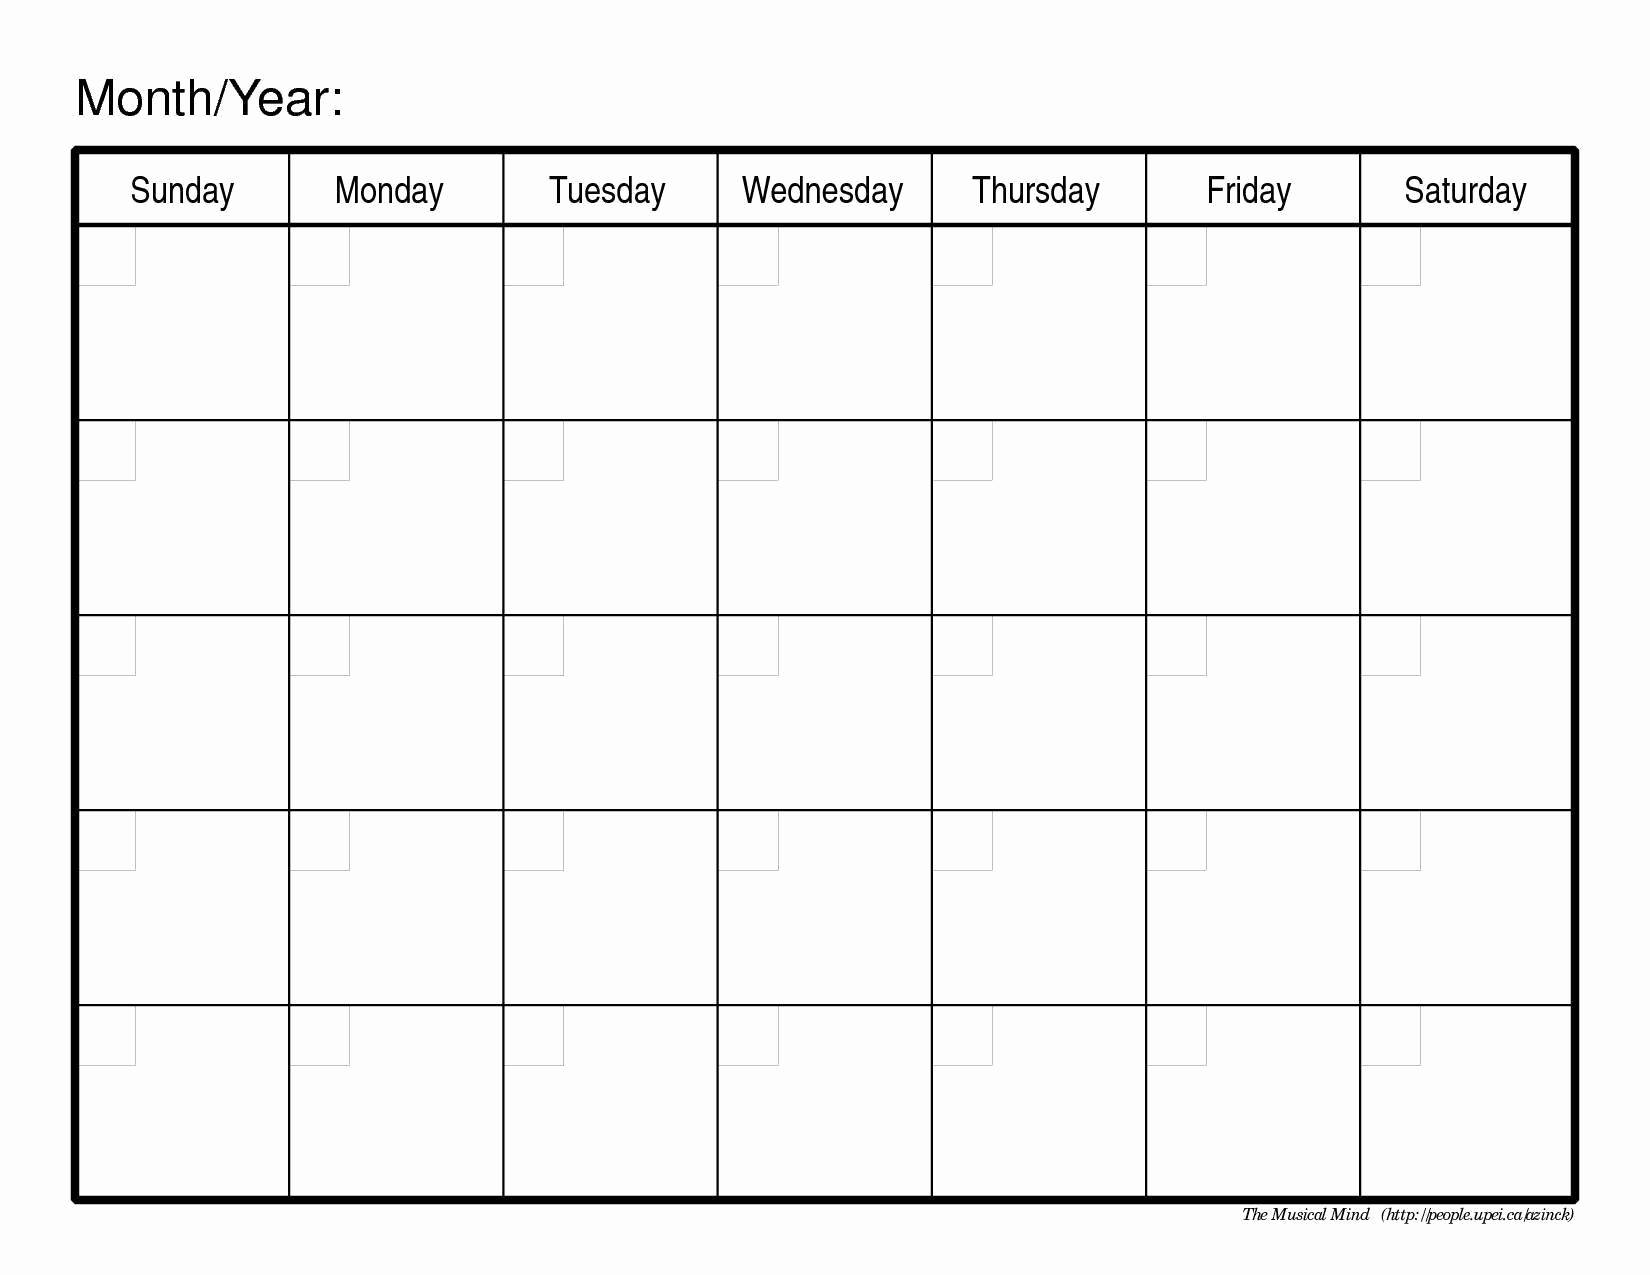 Monthly Budget Calendar Template Awesome Sample Monthly Calendar  Xjb